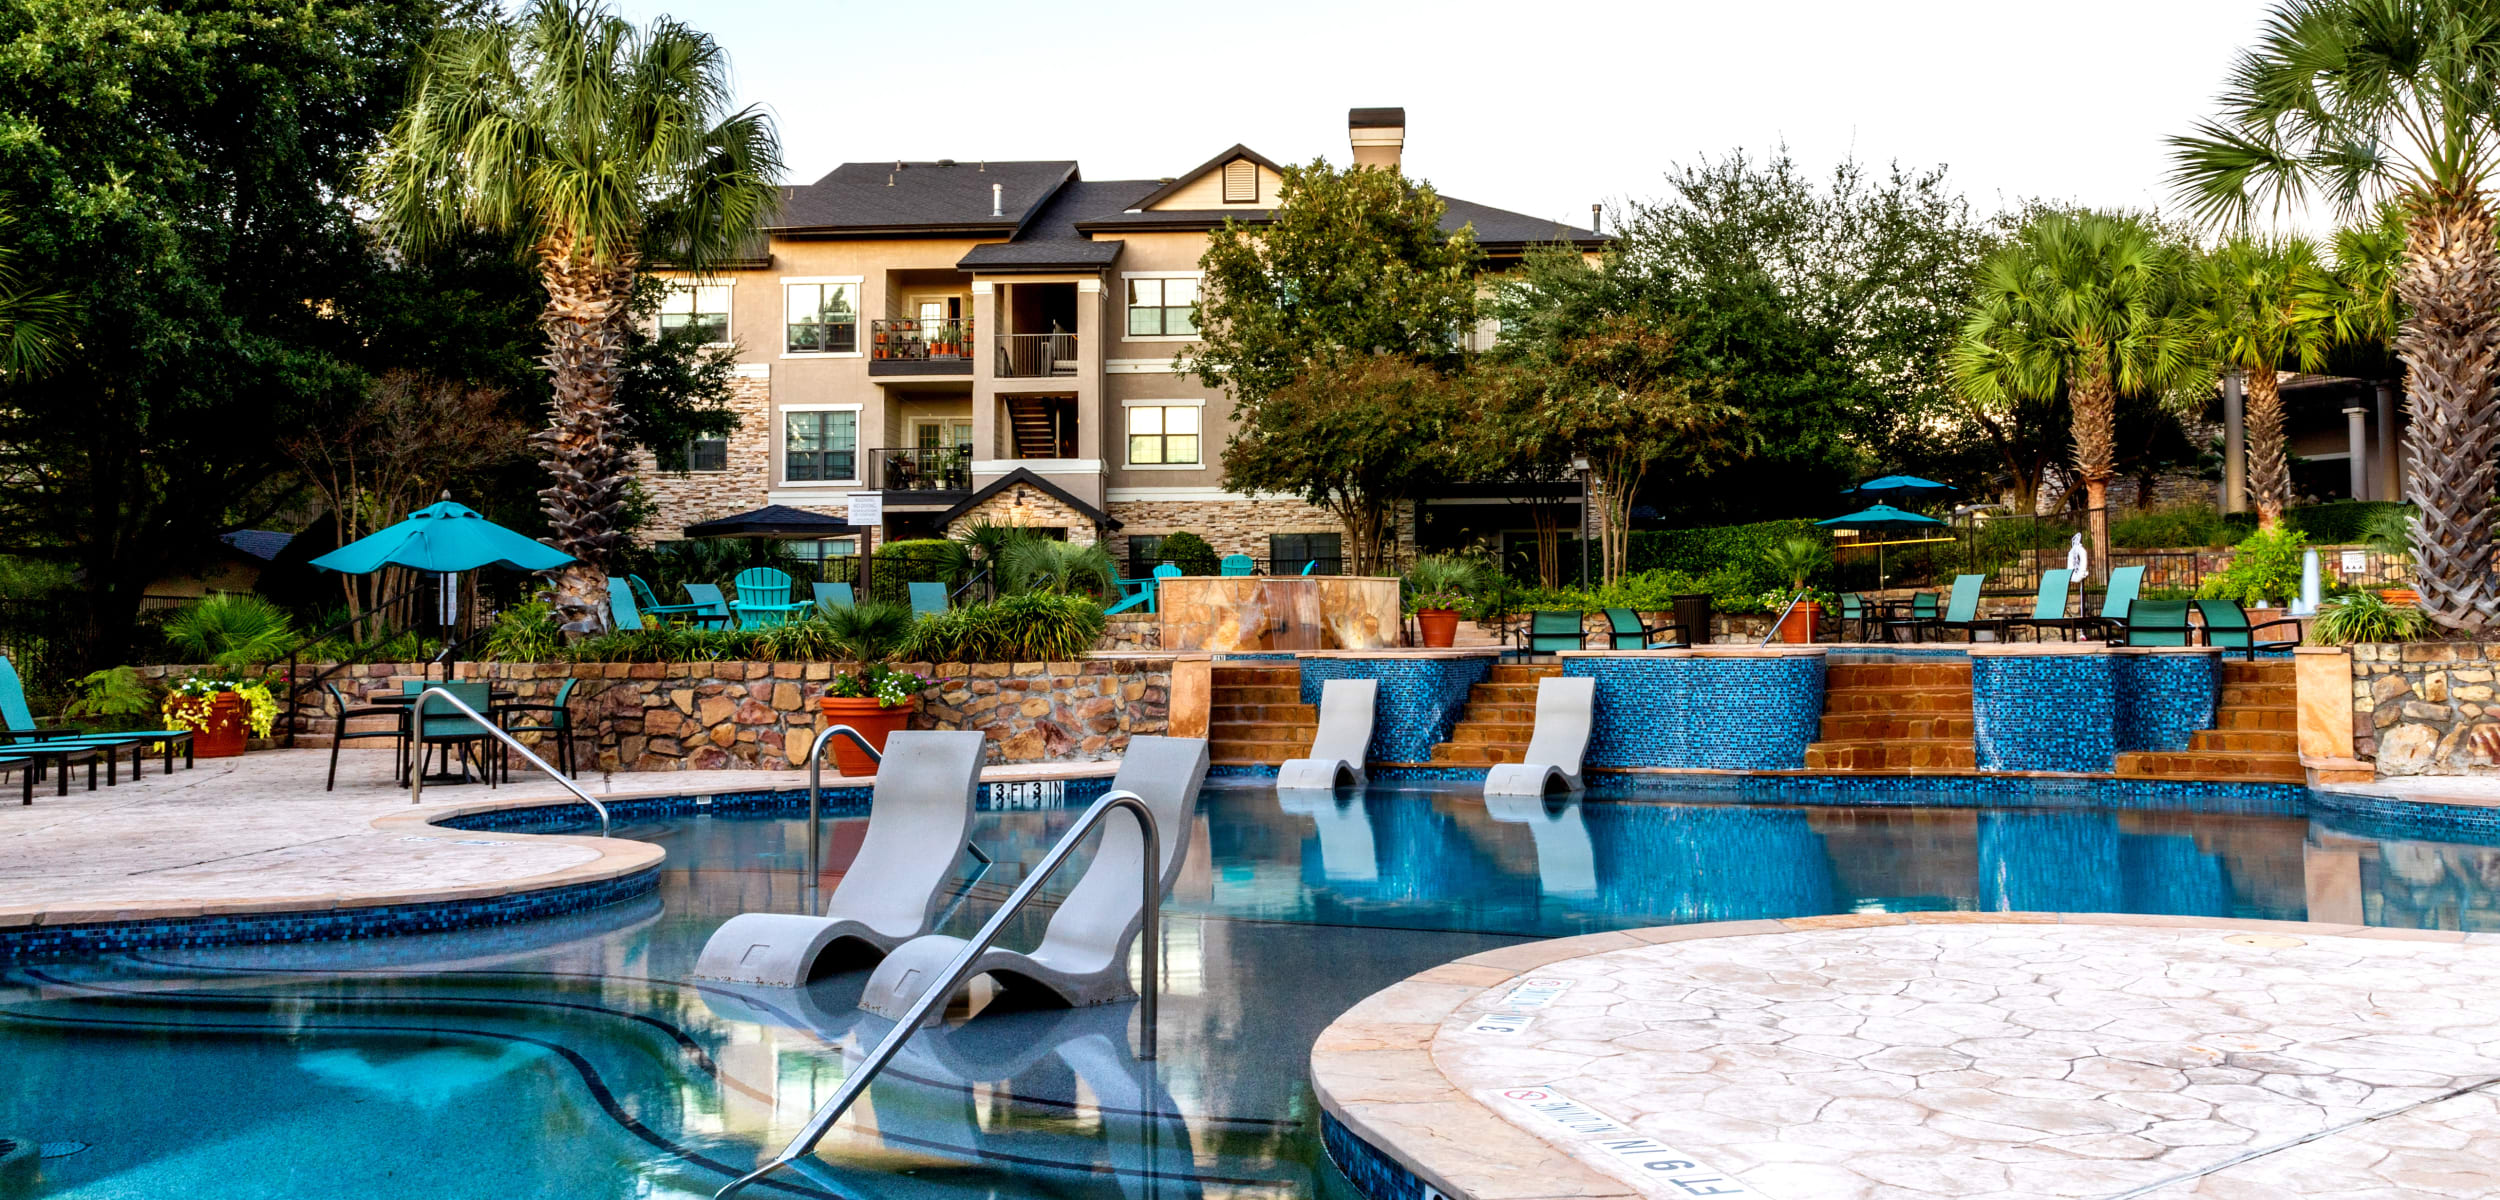 Sparkling pool at Marquis Parkside in Austin, Texas